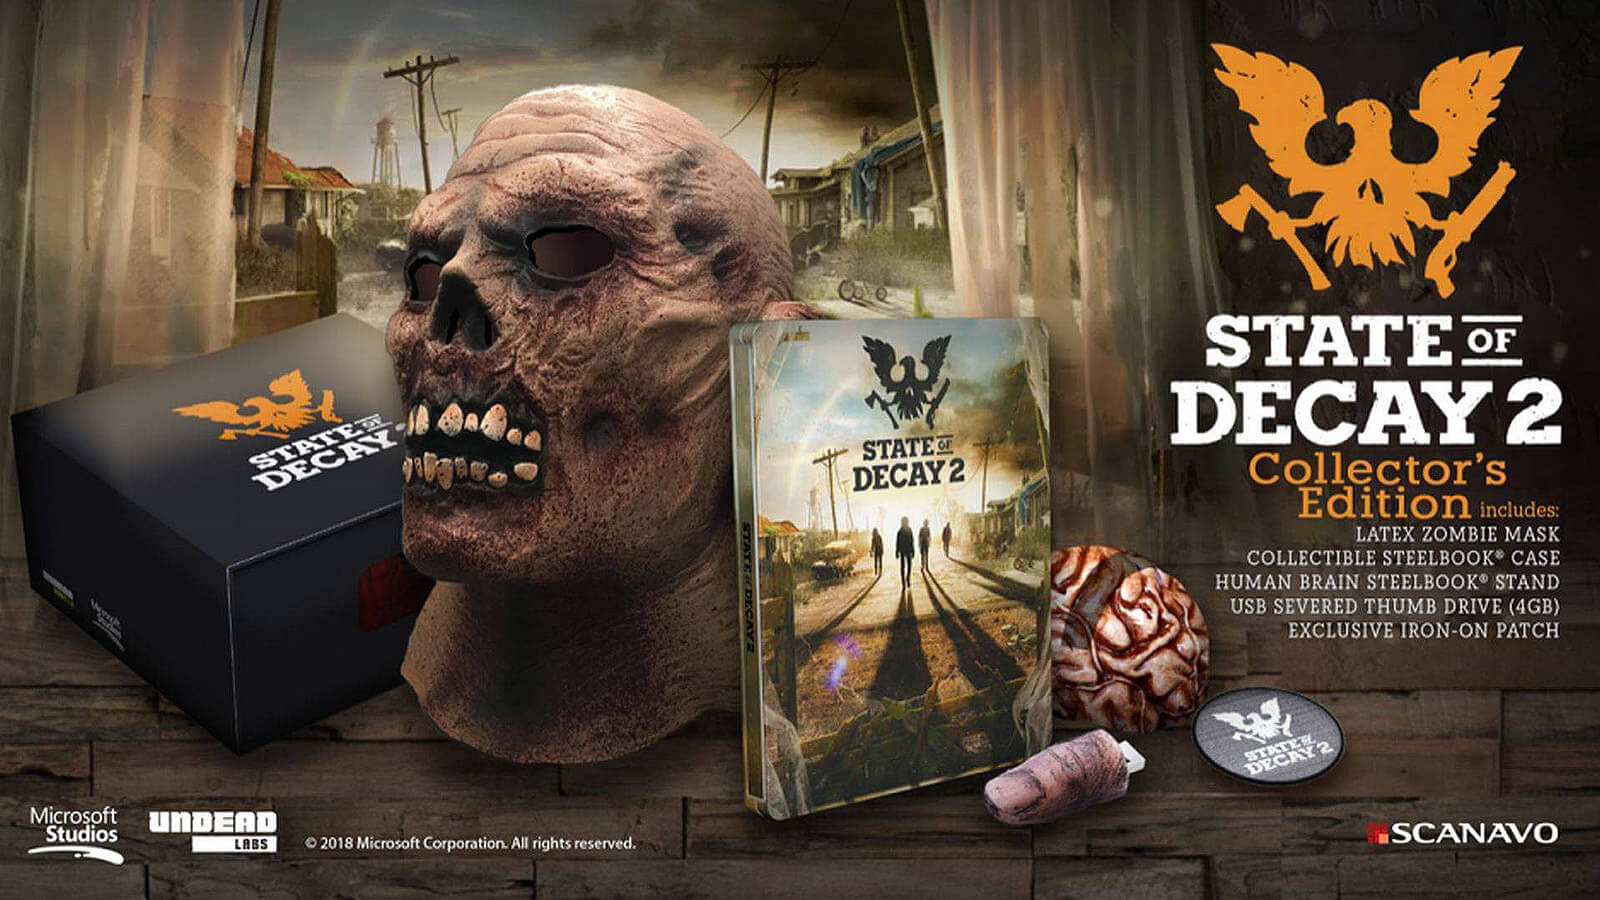 x state of decay k pc wallpaper free download